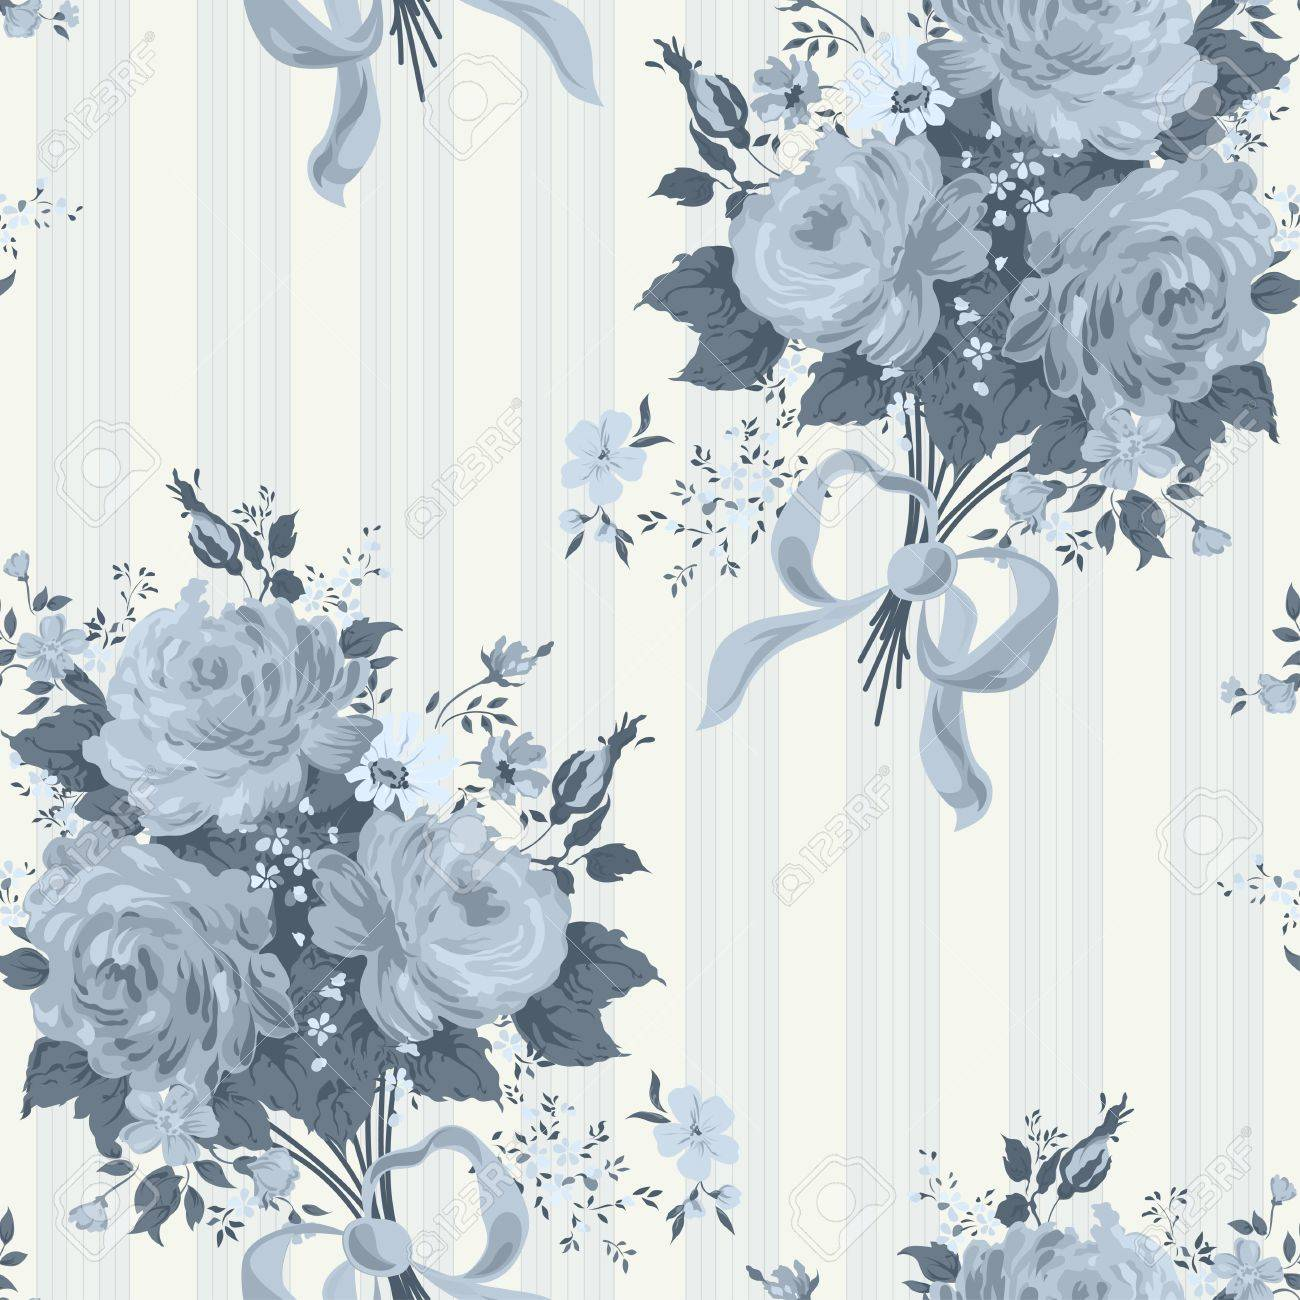 Blue Rose Vintage Wallpaper Floral Pattern Royalty Free Cliparts